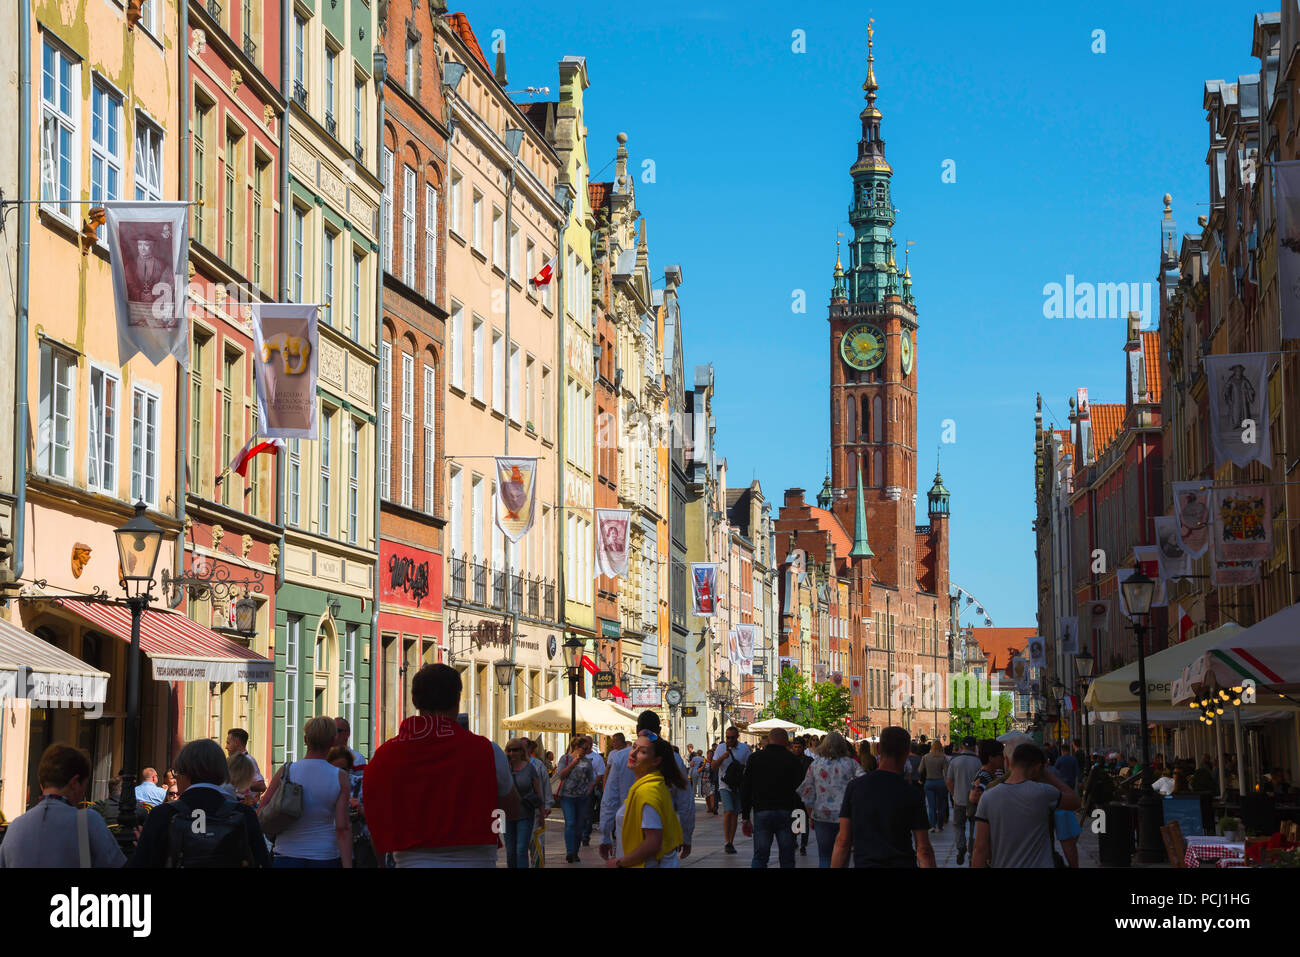 Gdansk Poland Street, view along the Royal Way - the main street in the center of Gdansk - looking towards the Town Hall tower, Pomerania, Poland. - Stock Image